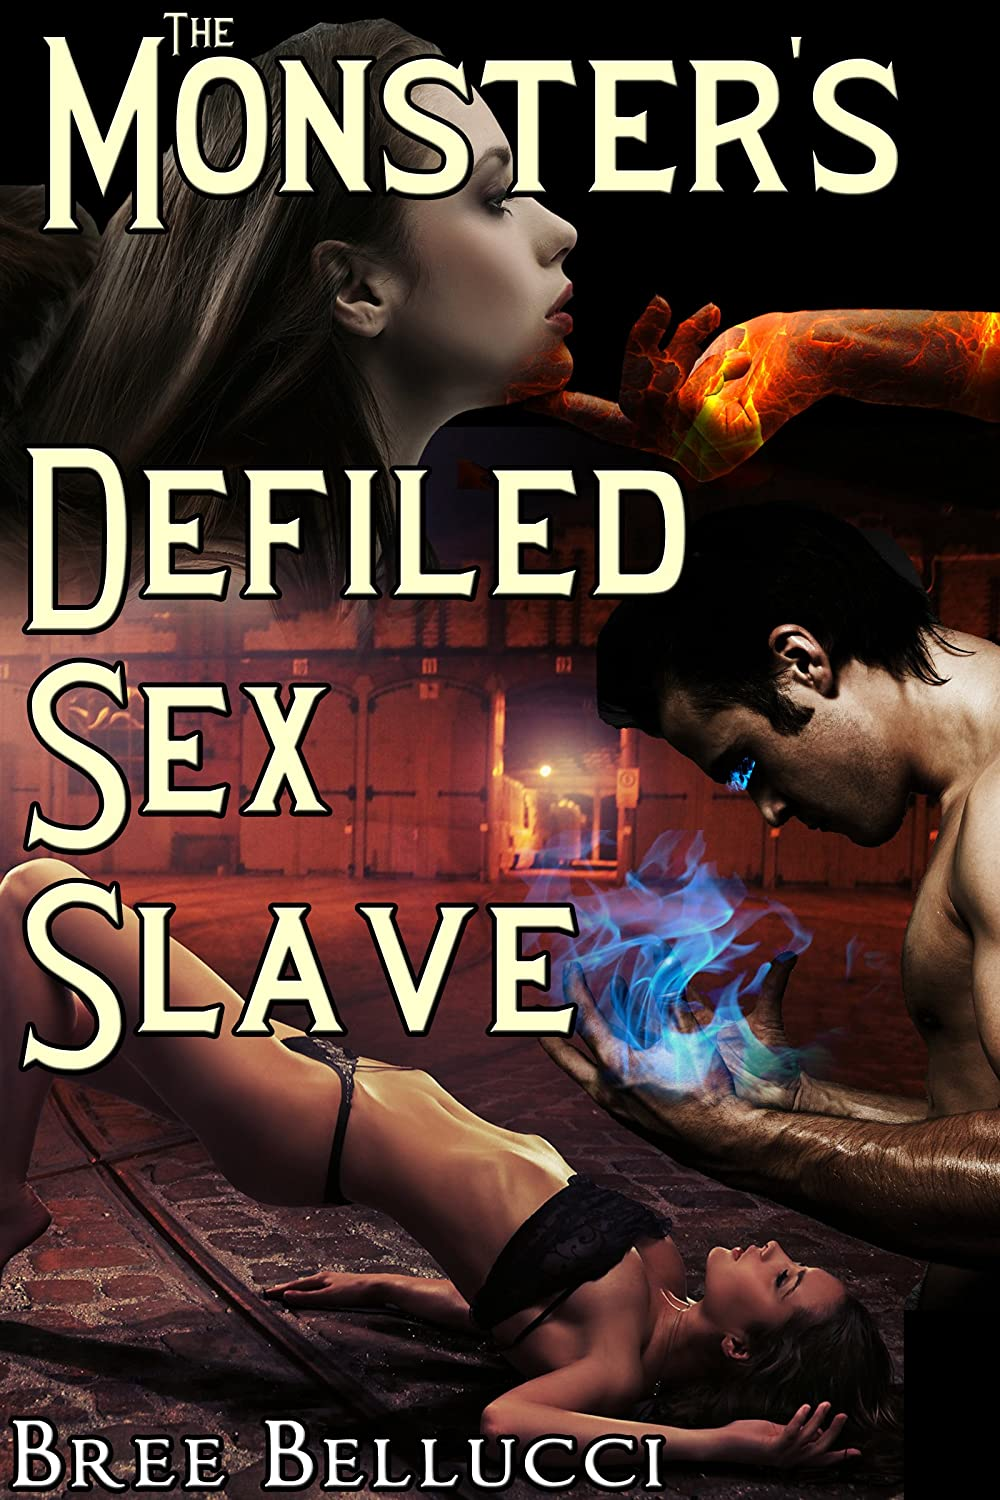 The Monsters Defiled Sex Slave (Contract of Eternal Submission Part 3)